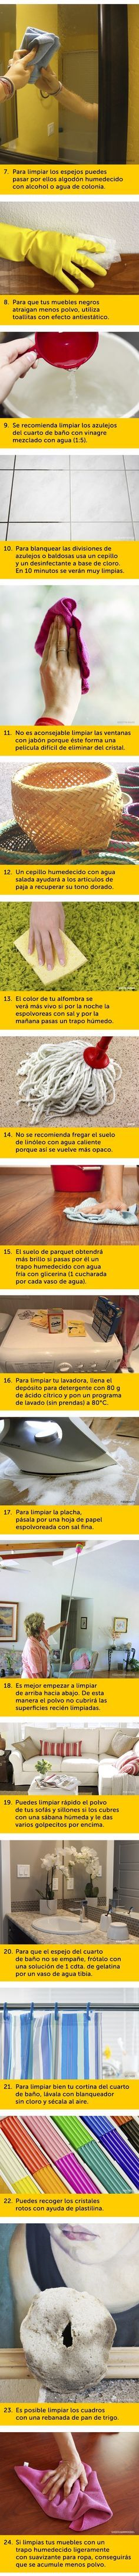 100 Pieces of Advice for Almost Any Occasion Cleaning Companies, Cleaning Hacks, Power Clean, I Can Do It, Hygiene, Home Health, Natural Cleaning Products, Home Hacks, Organization Hacks